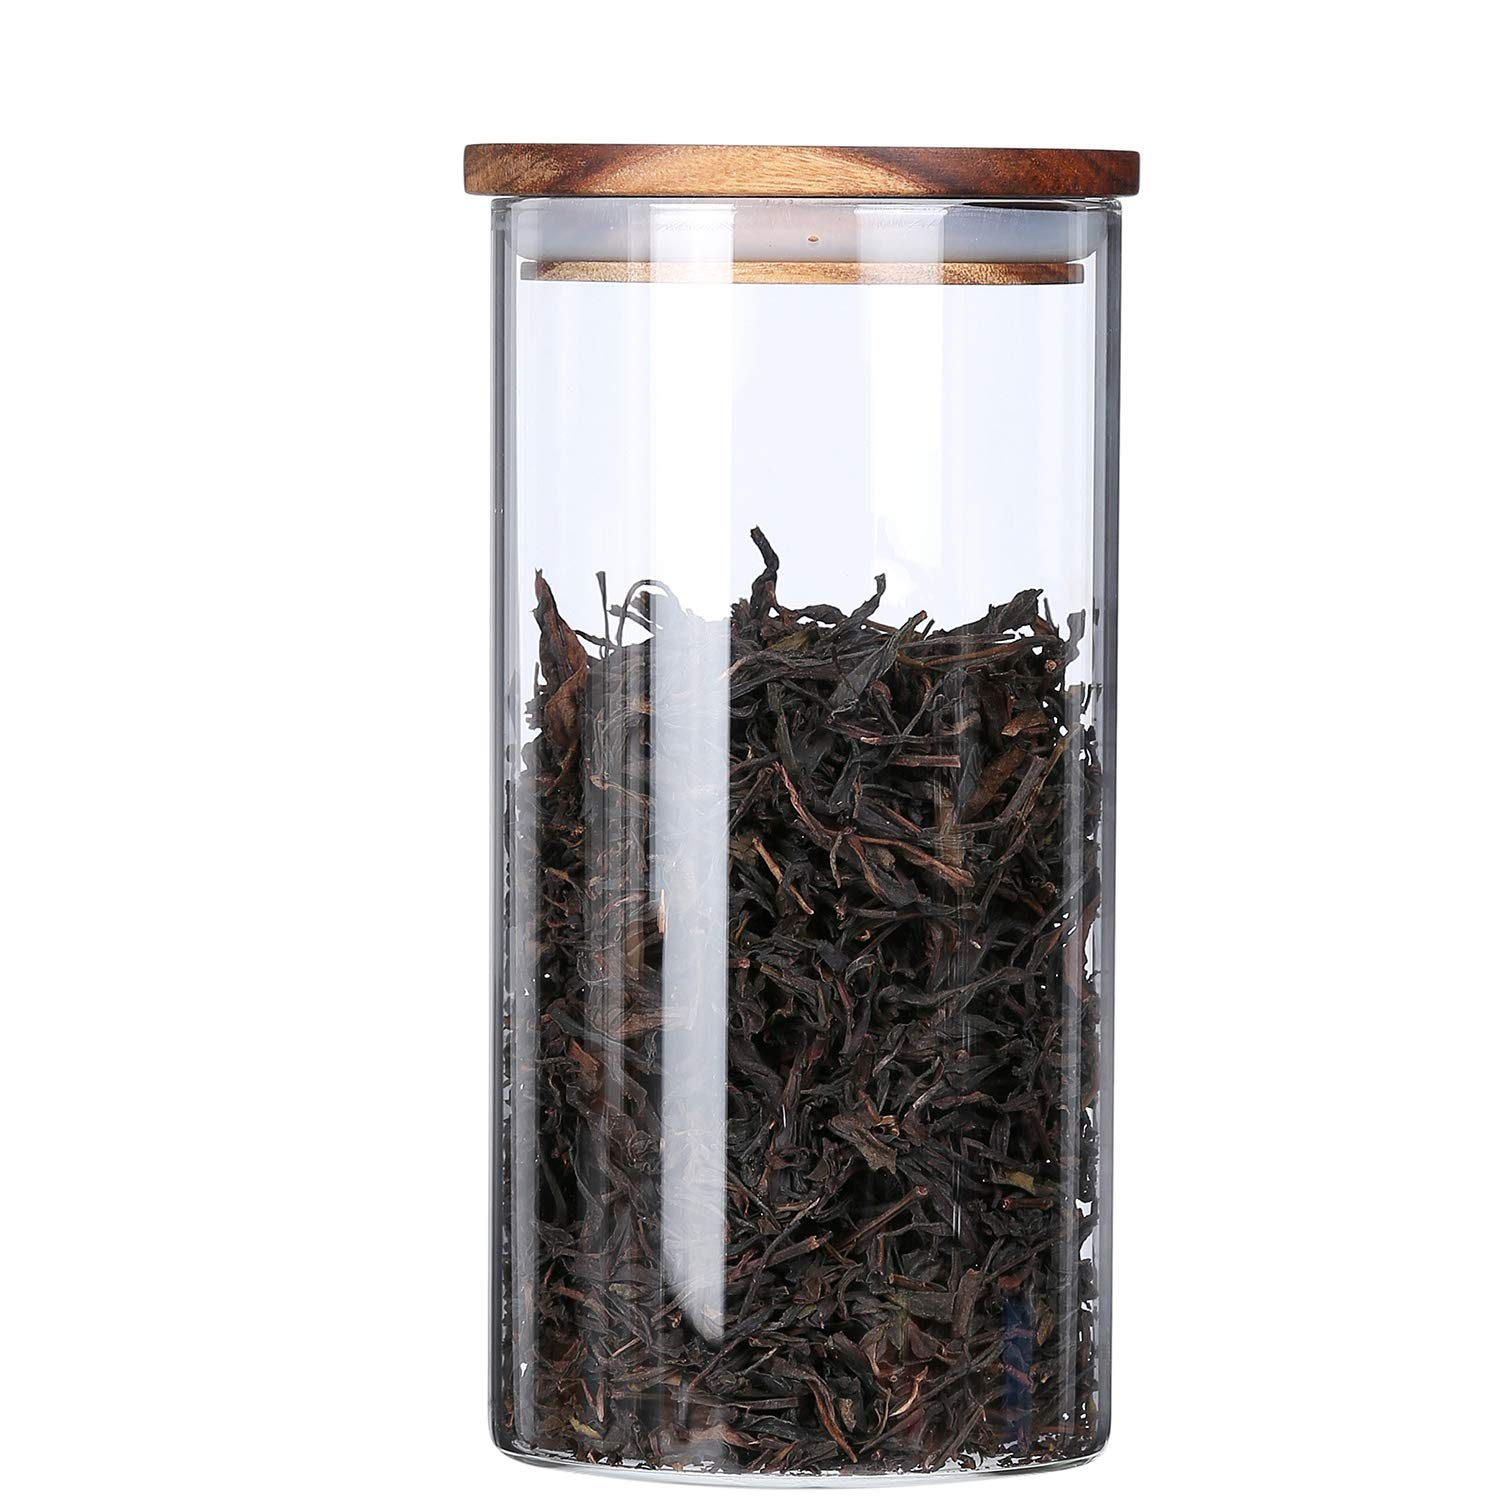 Clear Glass Canisters Jars Containers Set for Food Storage with Airtight Wood Lids,Kitchen Canister,Tea Coffee Canister Sugar Loose Leaf Tea Container Cookies Jar,BPA Free,39 oz,1-Piece set